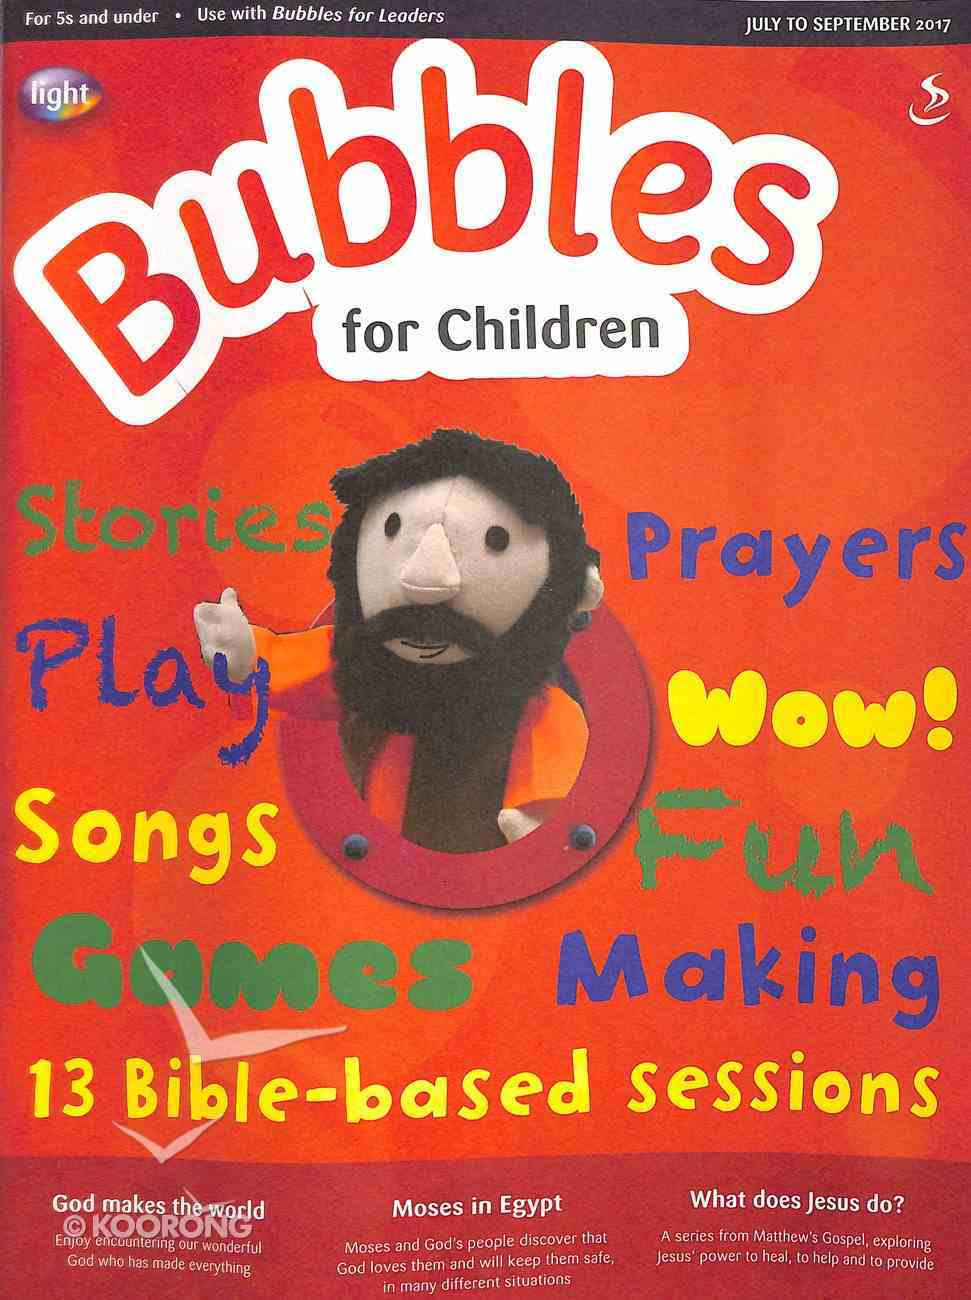 Light: Bubbles 2017 #03: Jul-Sep Student's Guide (5 And Under) Paperback